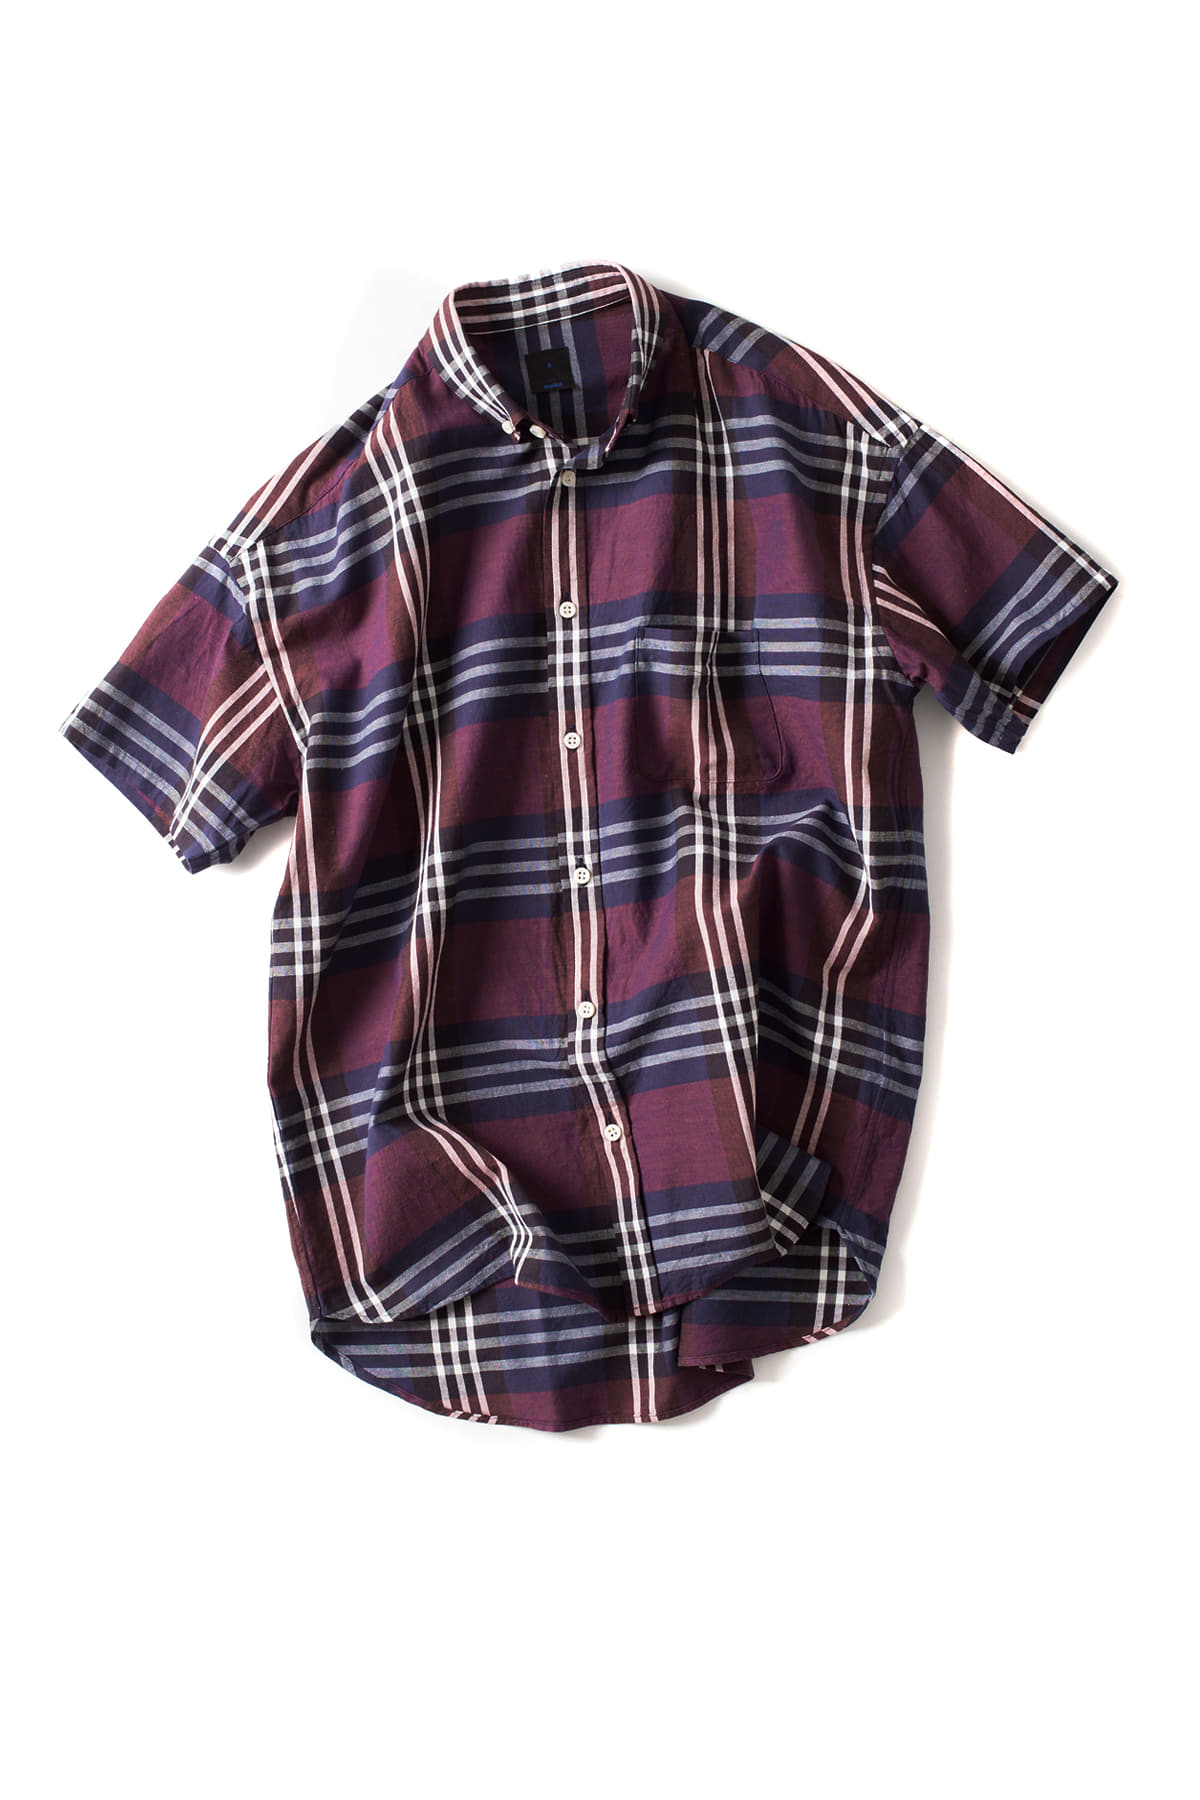 maillot : Big Check S/S Relax BD Shirt (Wine)